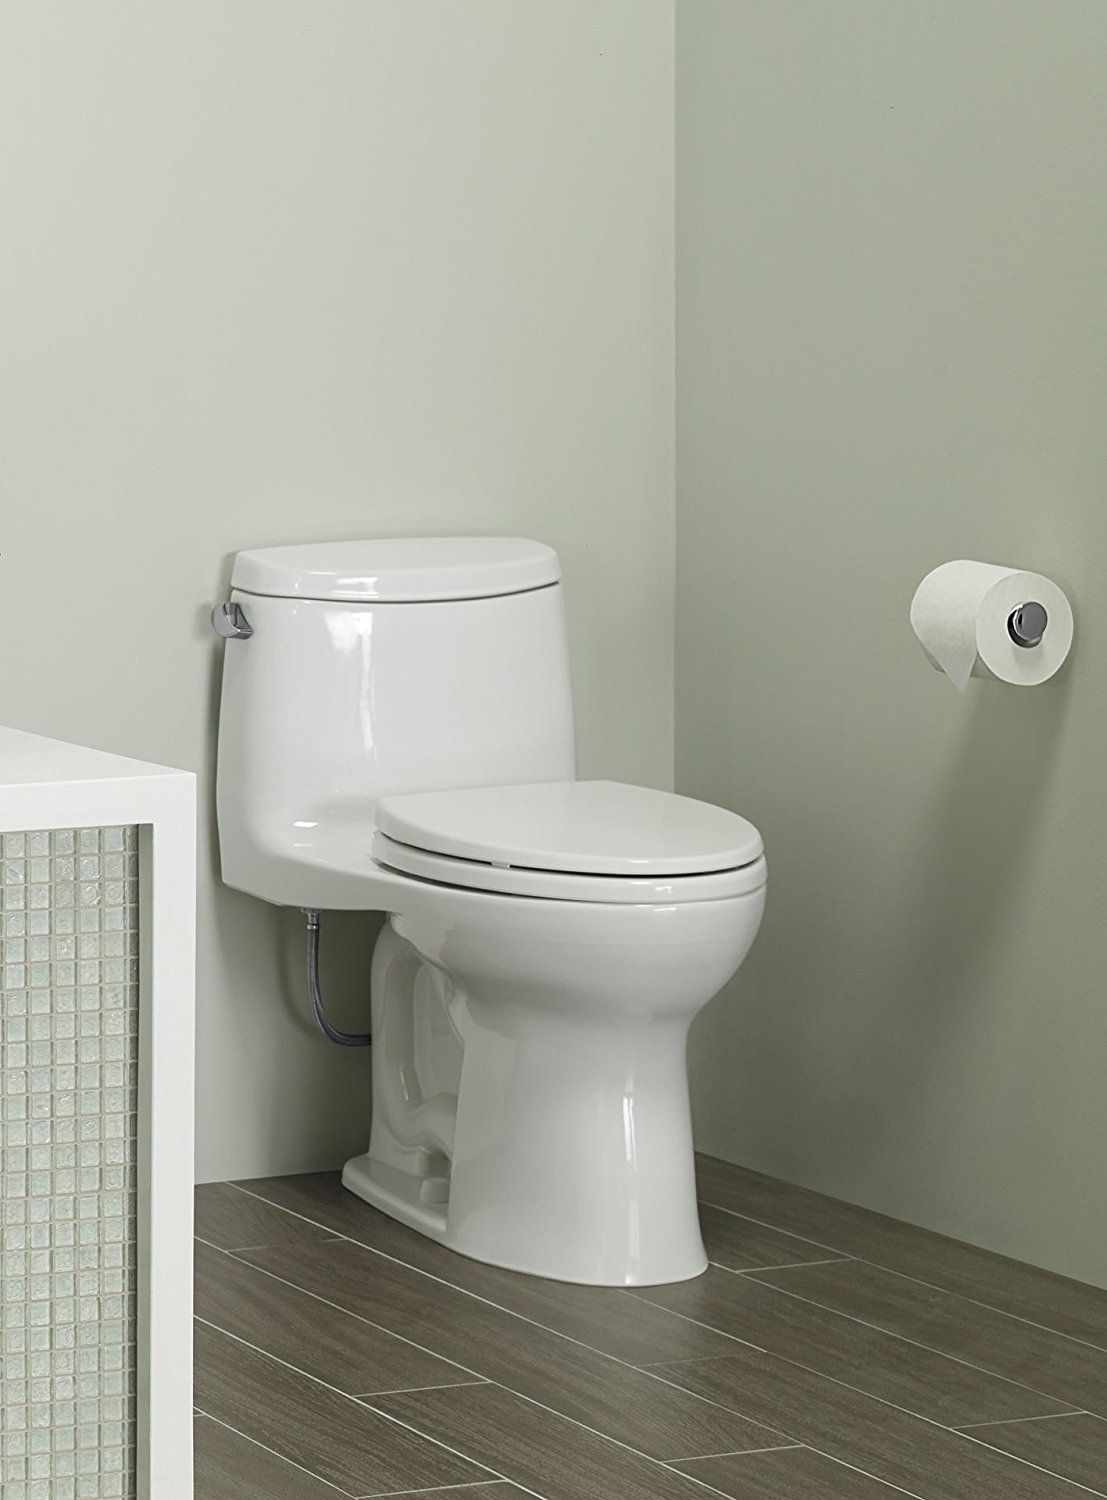 Toto Ms604114cefg 01 Ultramax Ii Het Double Cyclone Elongated One Piece Toilet With Sanagloss Cotton Wh One Piece Toilets Contemporary Bathroom Remodel Toilet